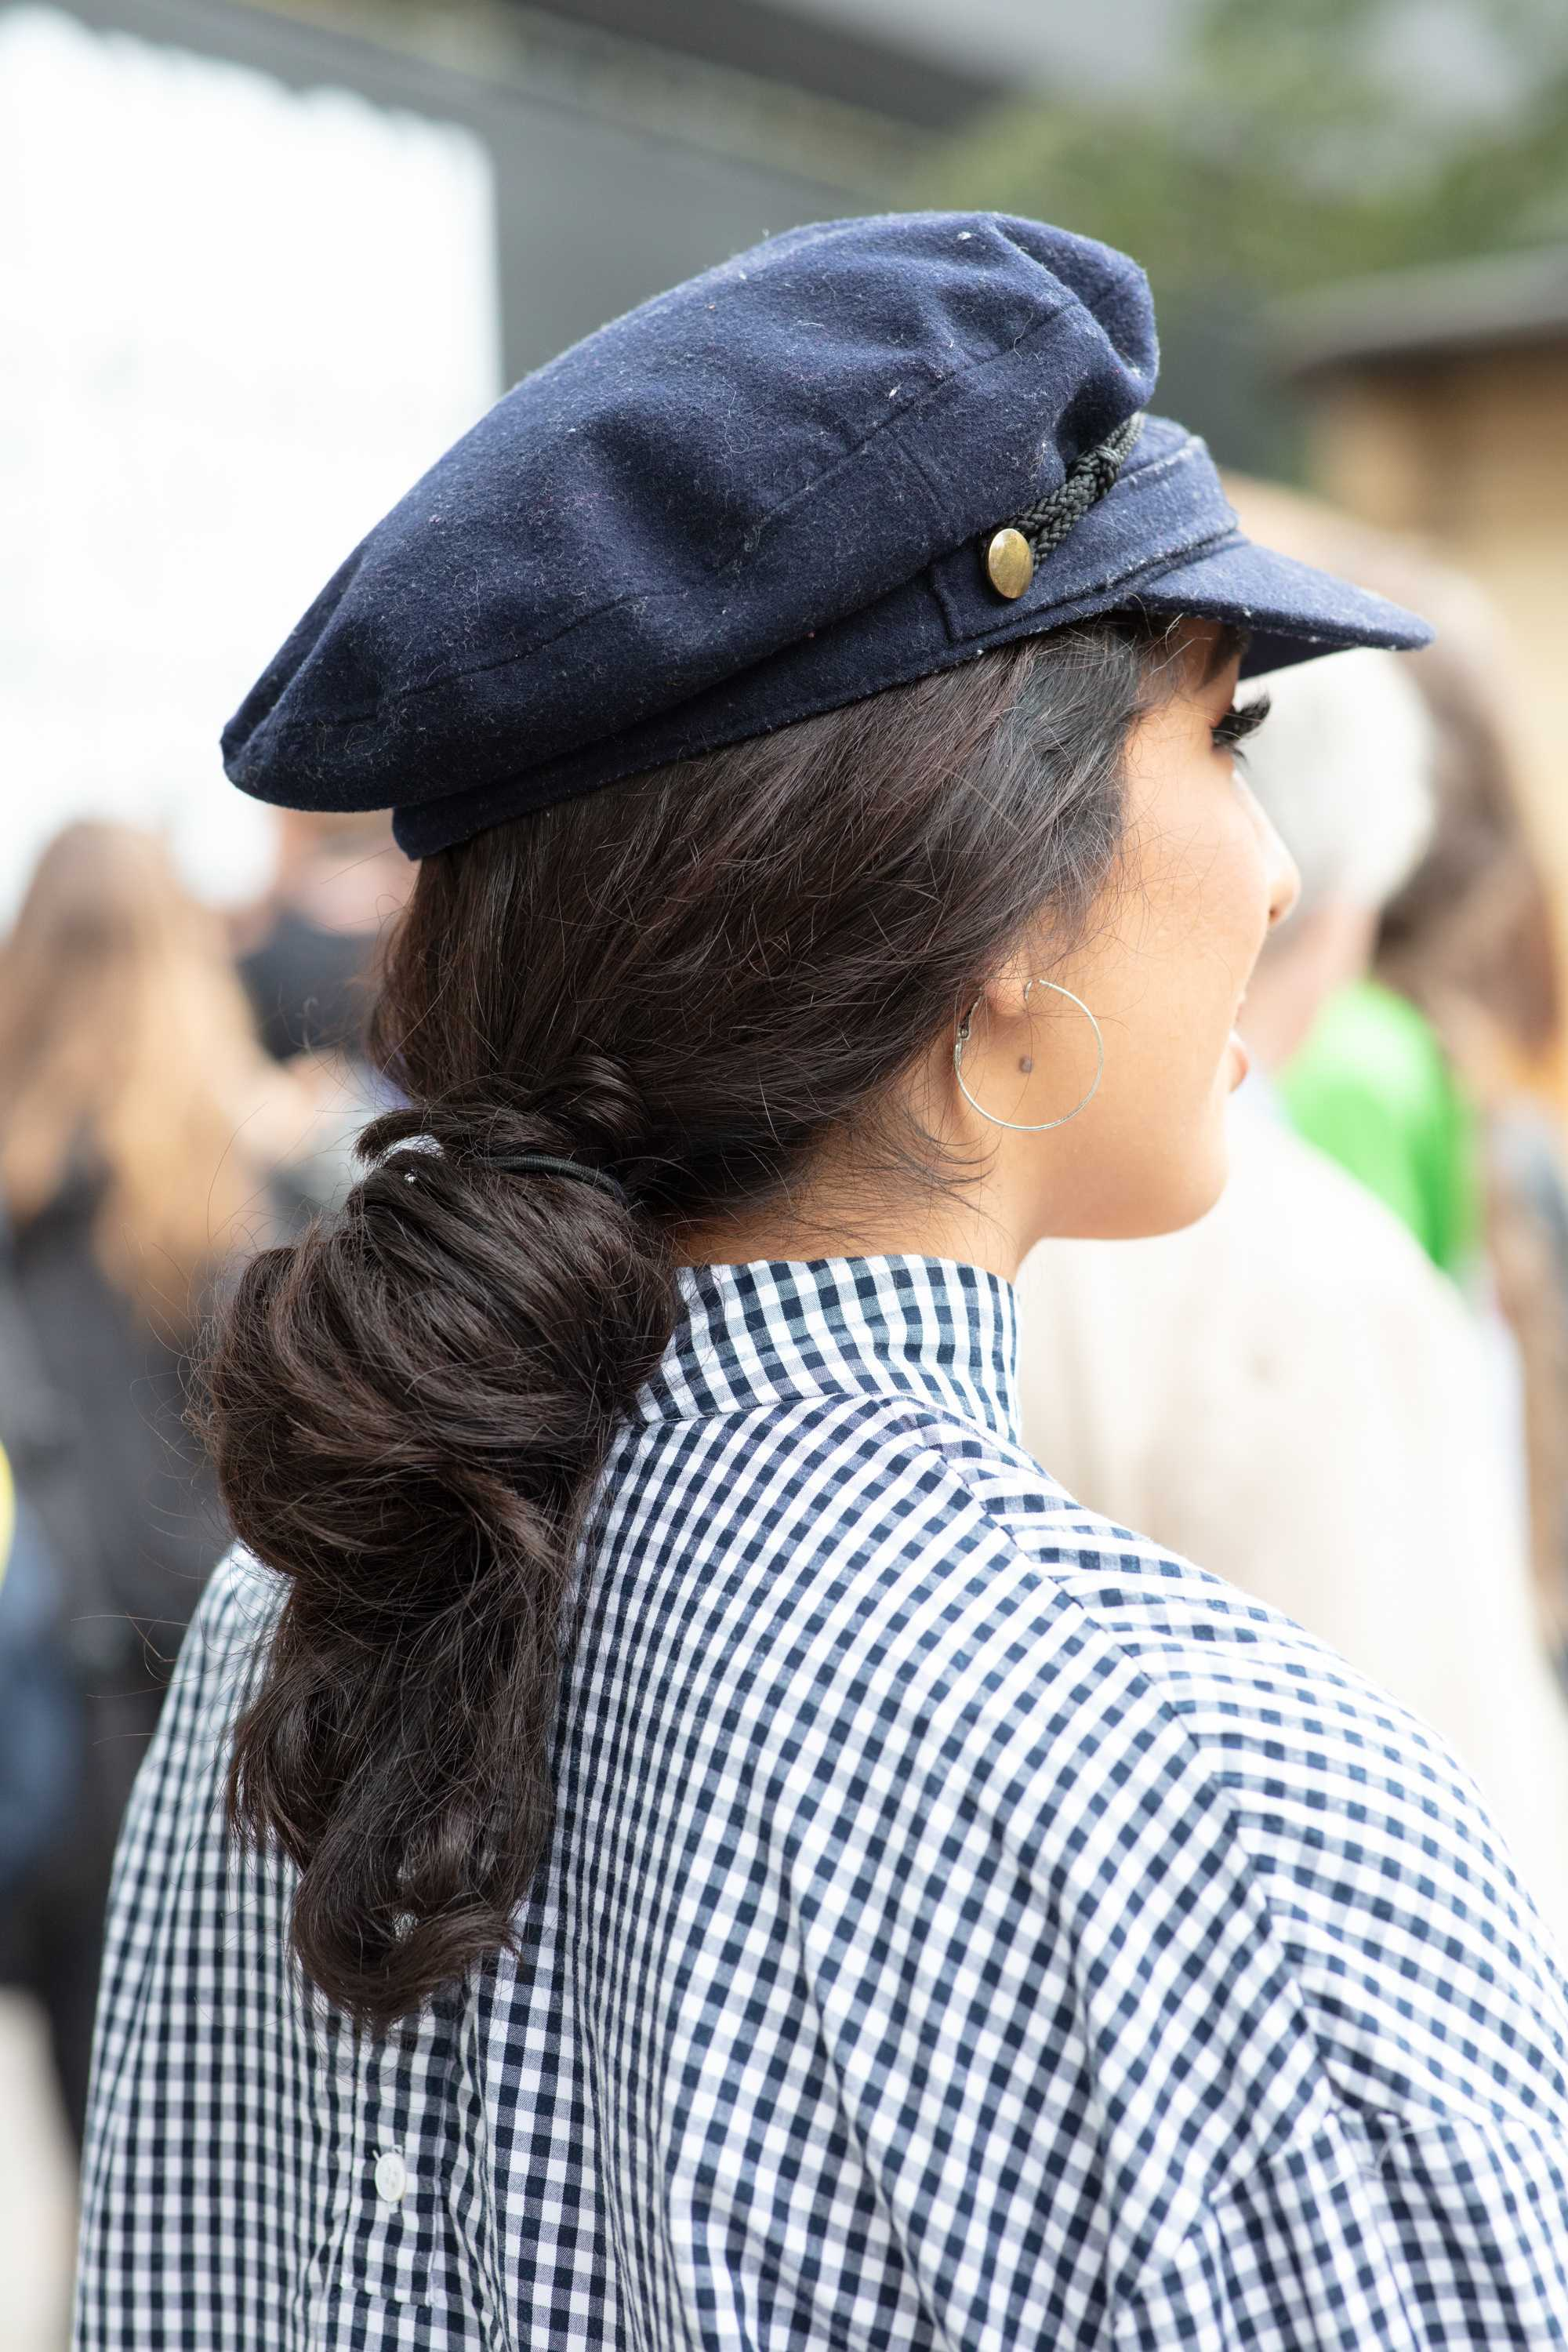 London Fashion Week street style hair: Close up shot of woman with long dark brown hair styled into a loose bun/ponytail hairstyle, wearing a baker boy hat and a checked shirt, while posing on the street